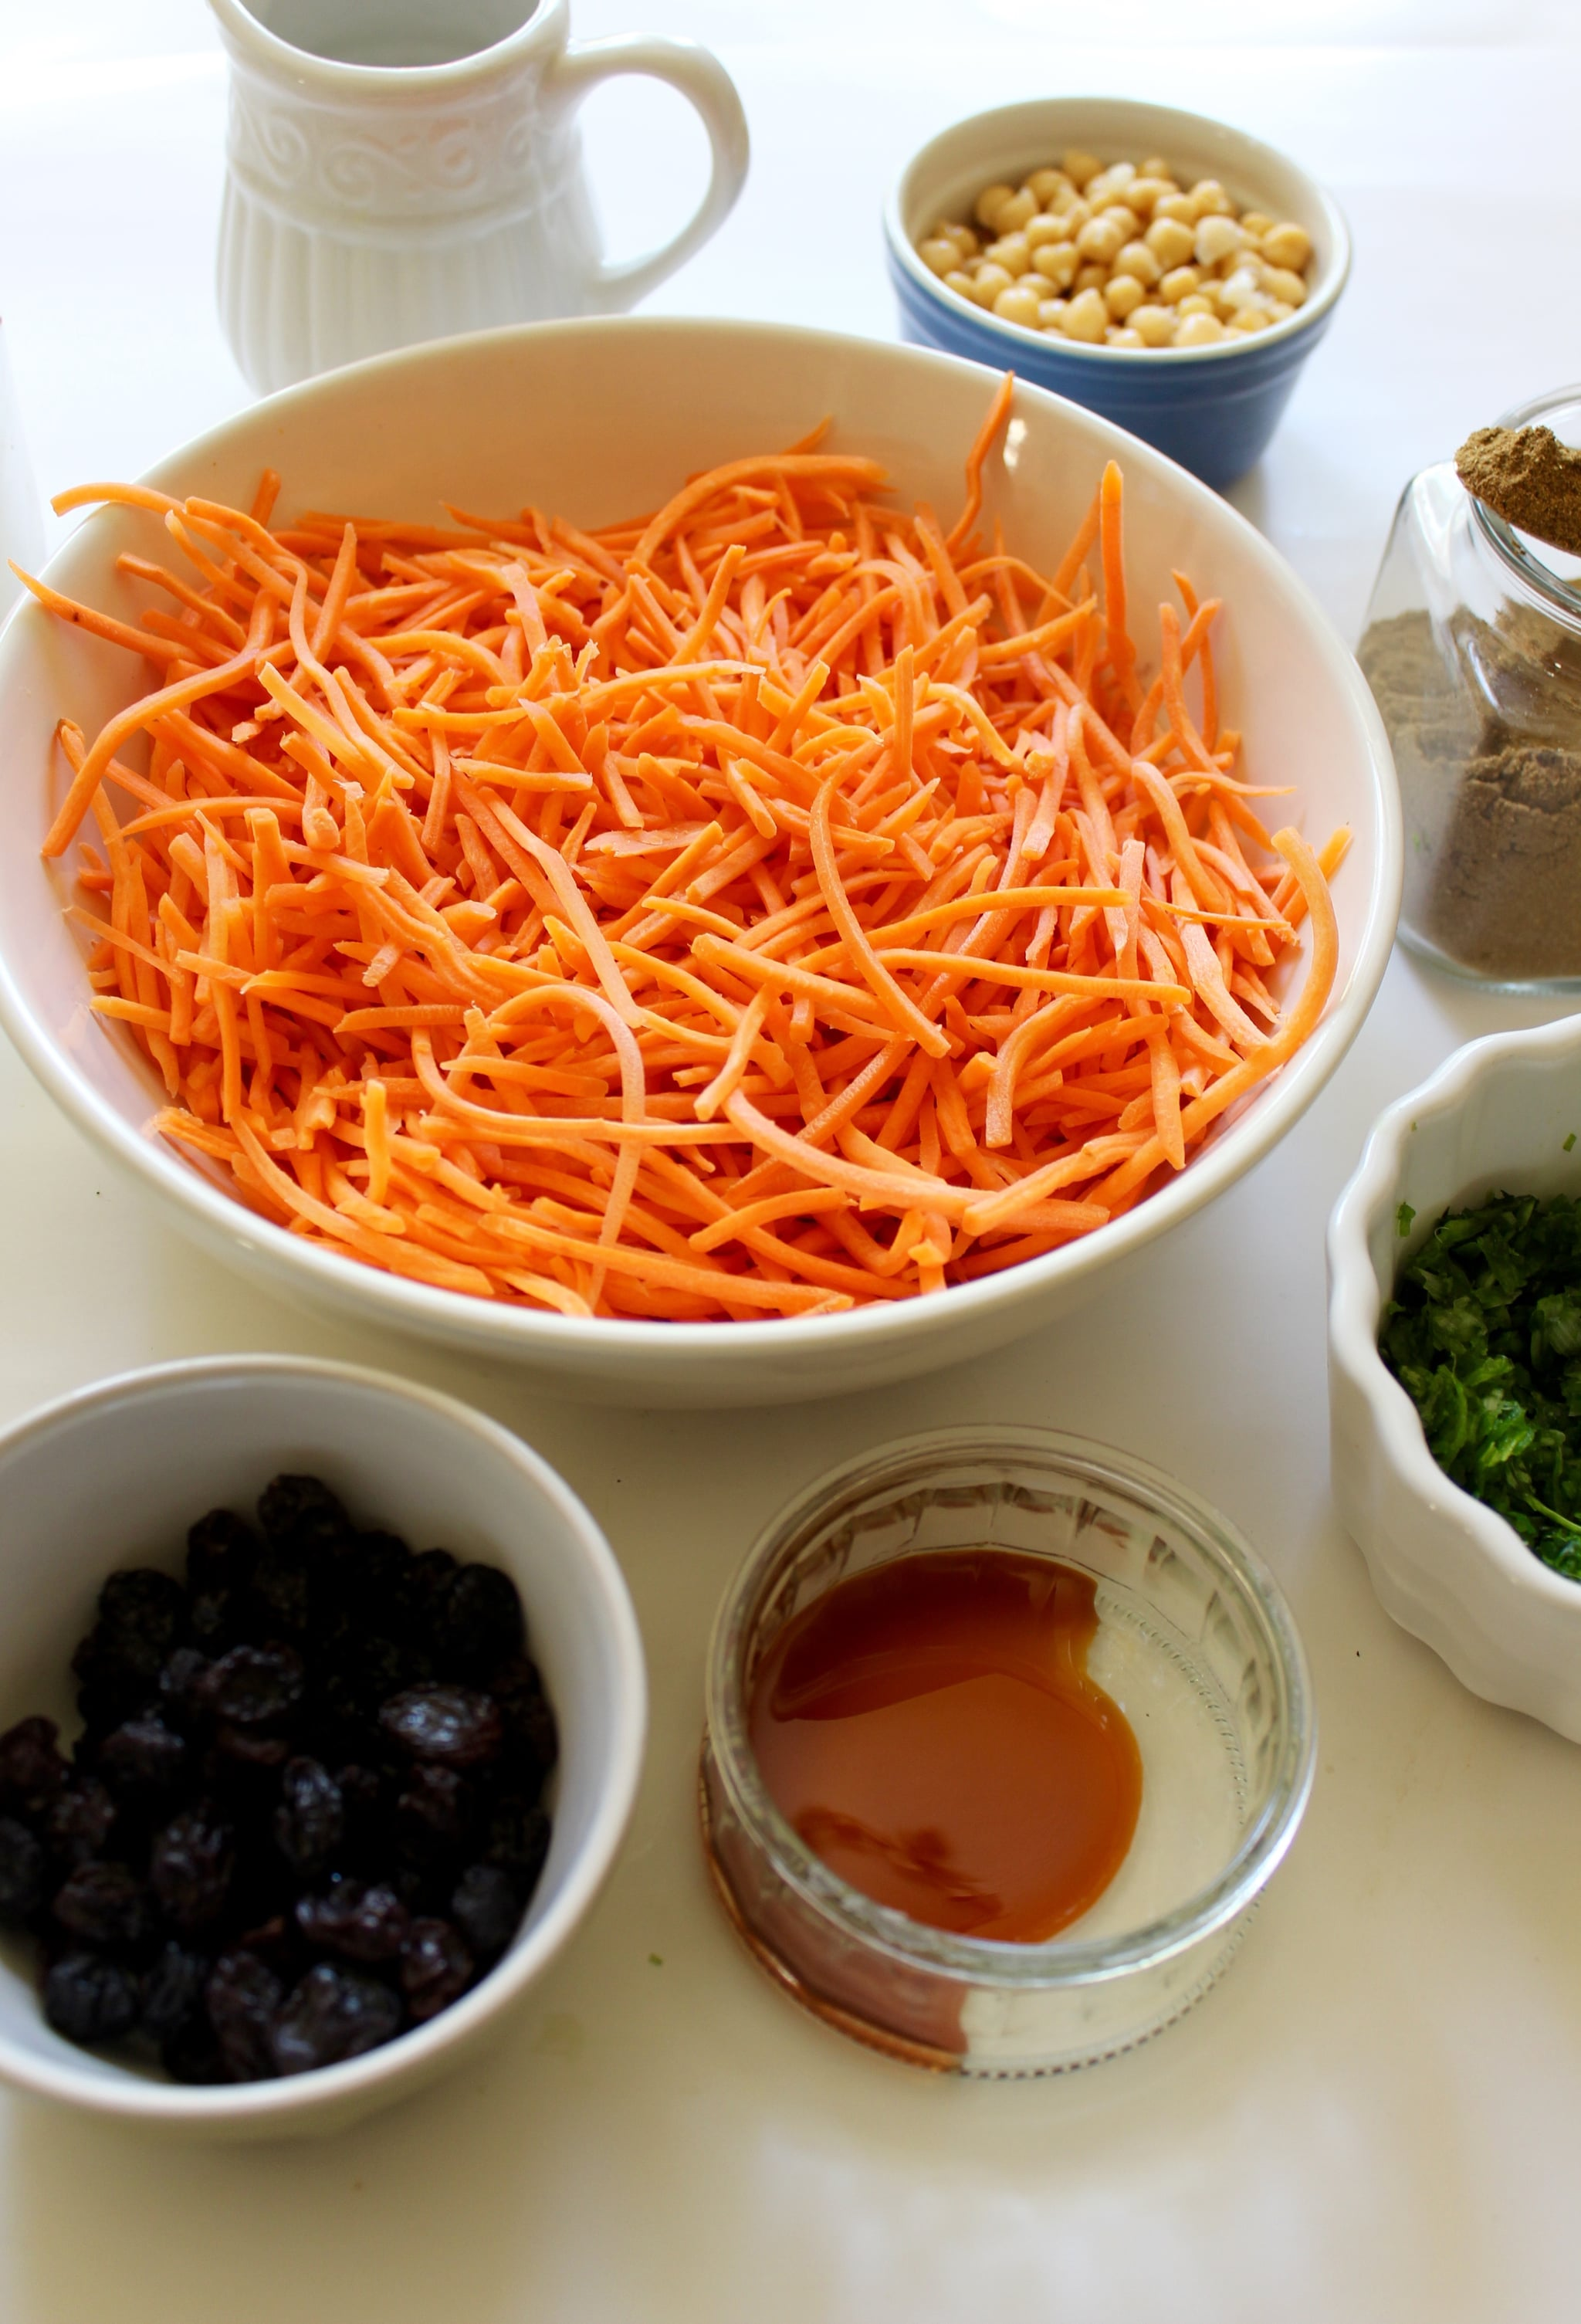 Take Yourself on a Vacation to Morocco With This Delicious and Easy Carrot Salad